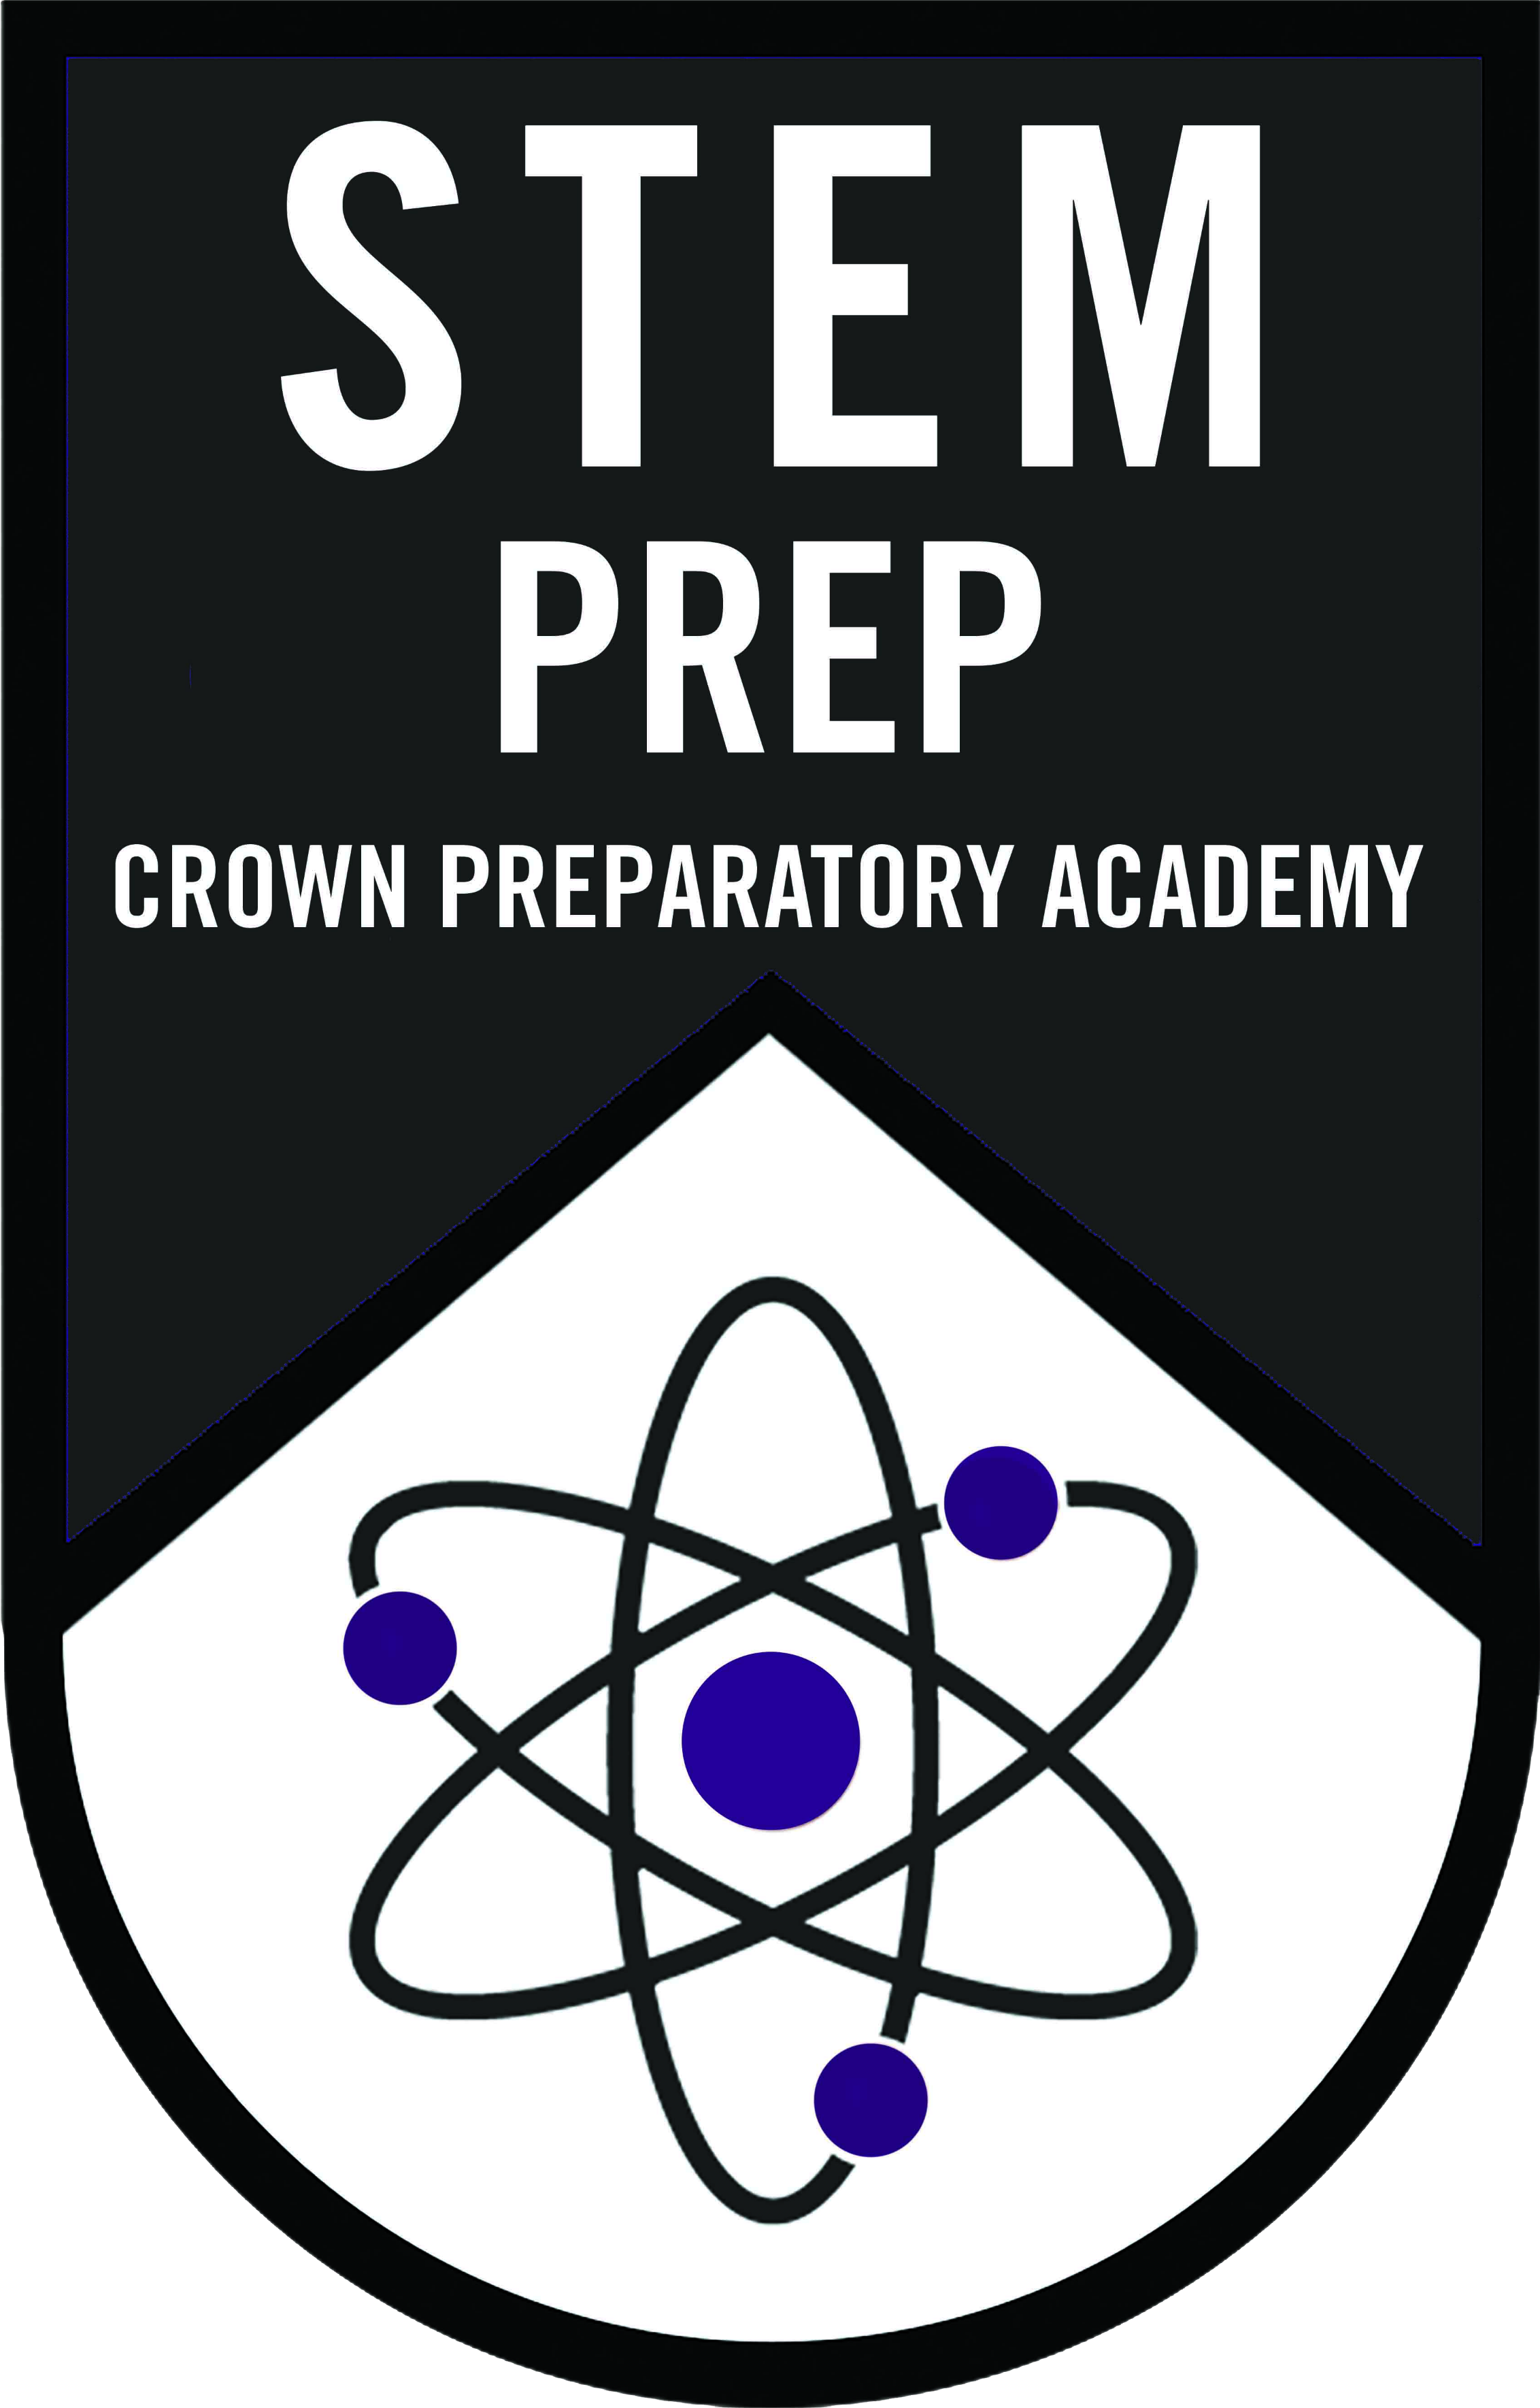 Crown Preparatory Academy